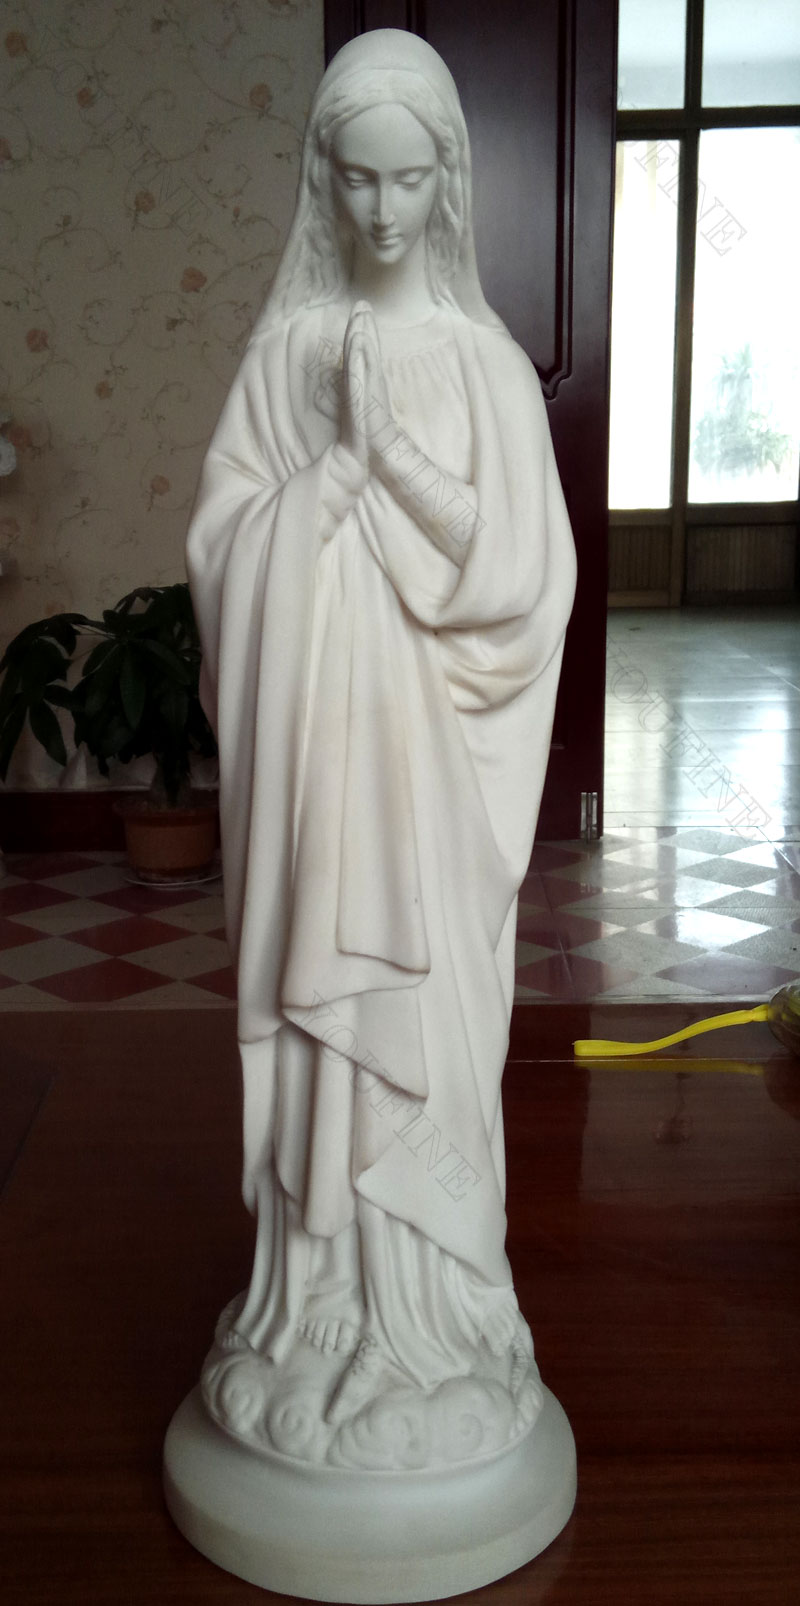 Life size white marble mother mary statues for interior decor designs